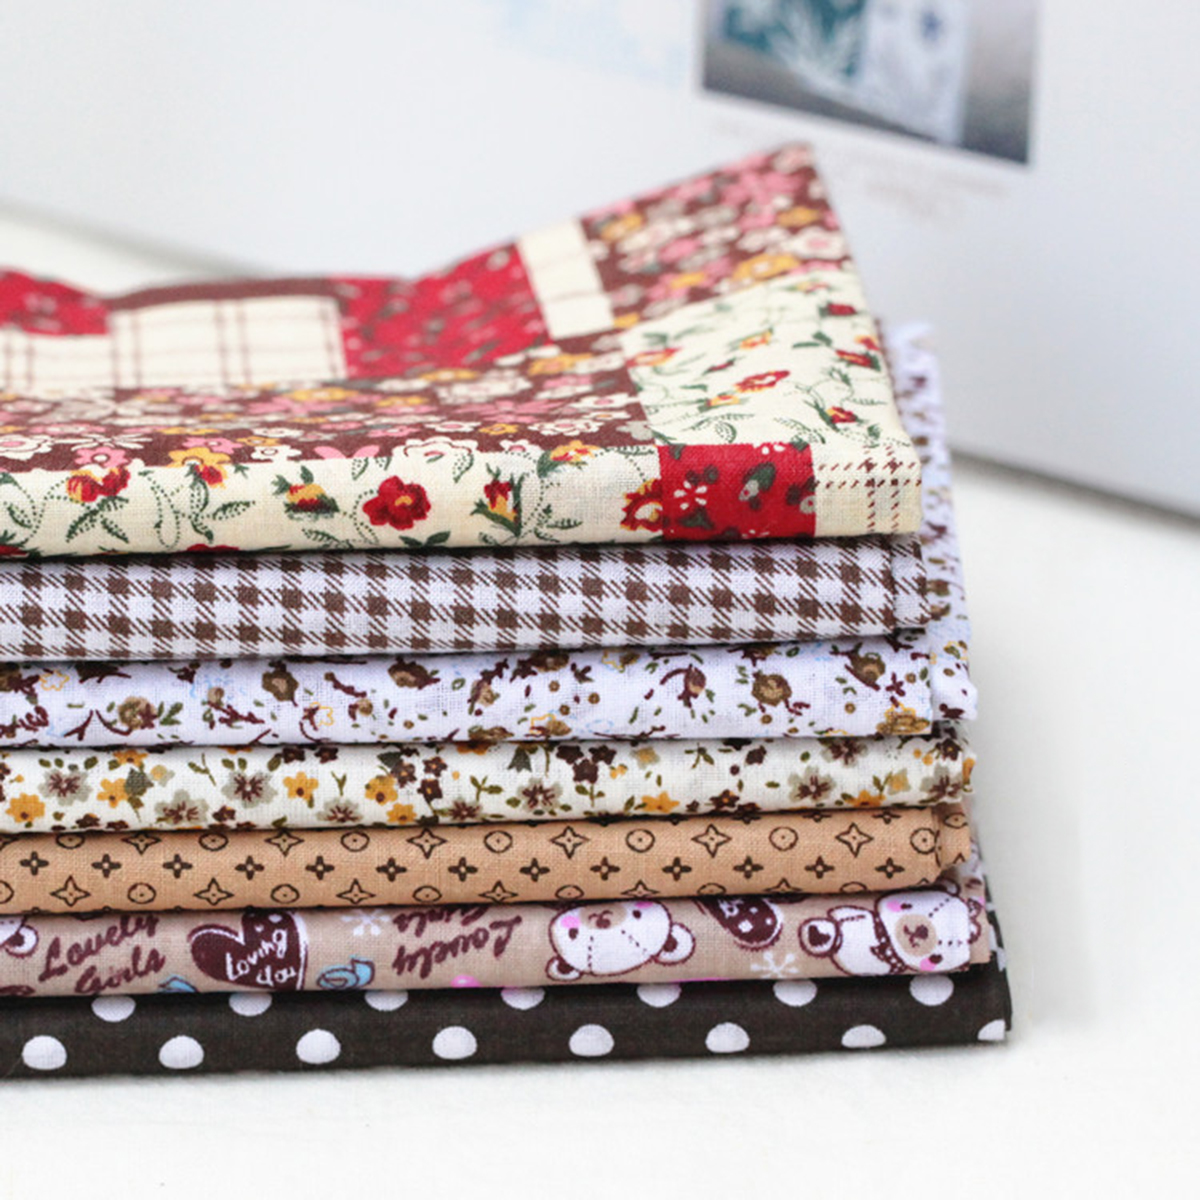 7pcs 25x25cm Assorted Pattern Floral Printed Patchwork Cotton Fabric Cloth DIY Crafts Bundle Sewing Quilting